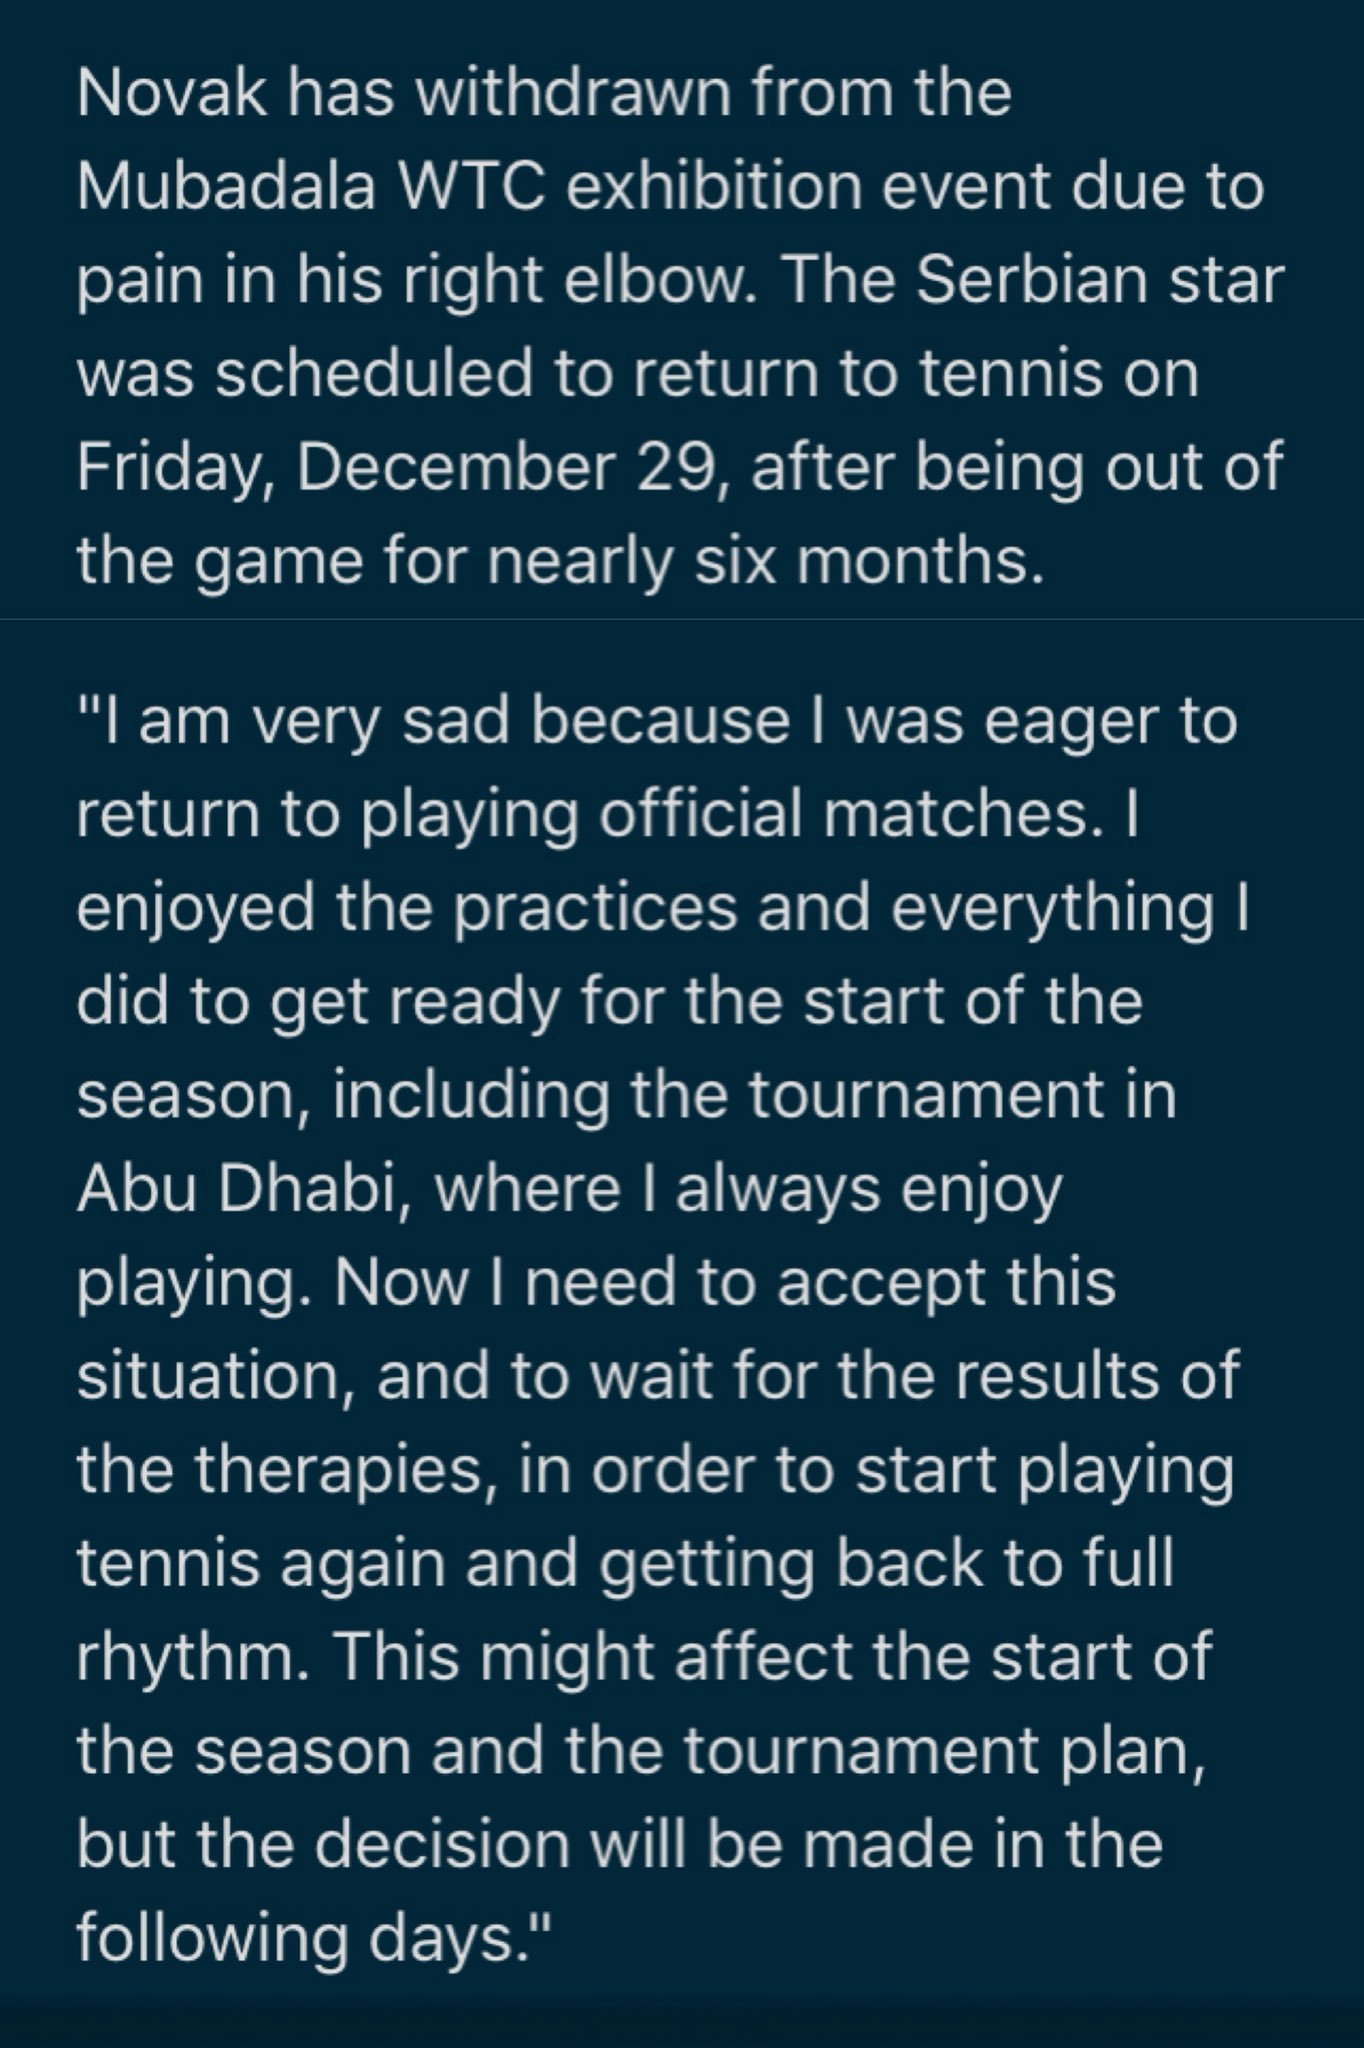 Another withdrawal.  Novak Djokovic won't return in Abu Dhabi because of his right elbow. https://t.co/eJZAPGpOGc